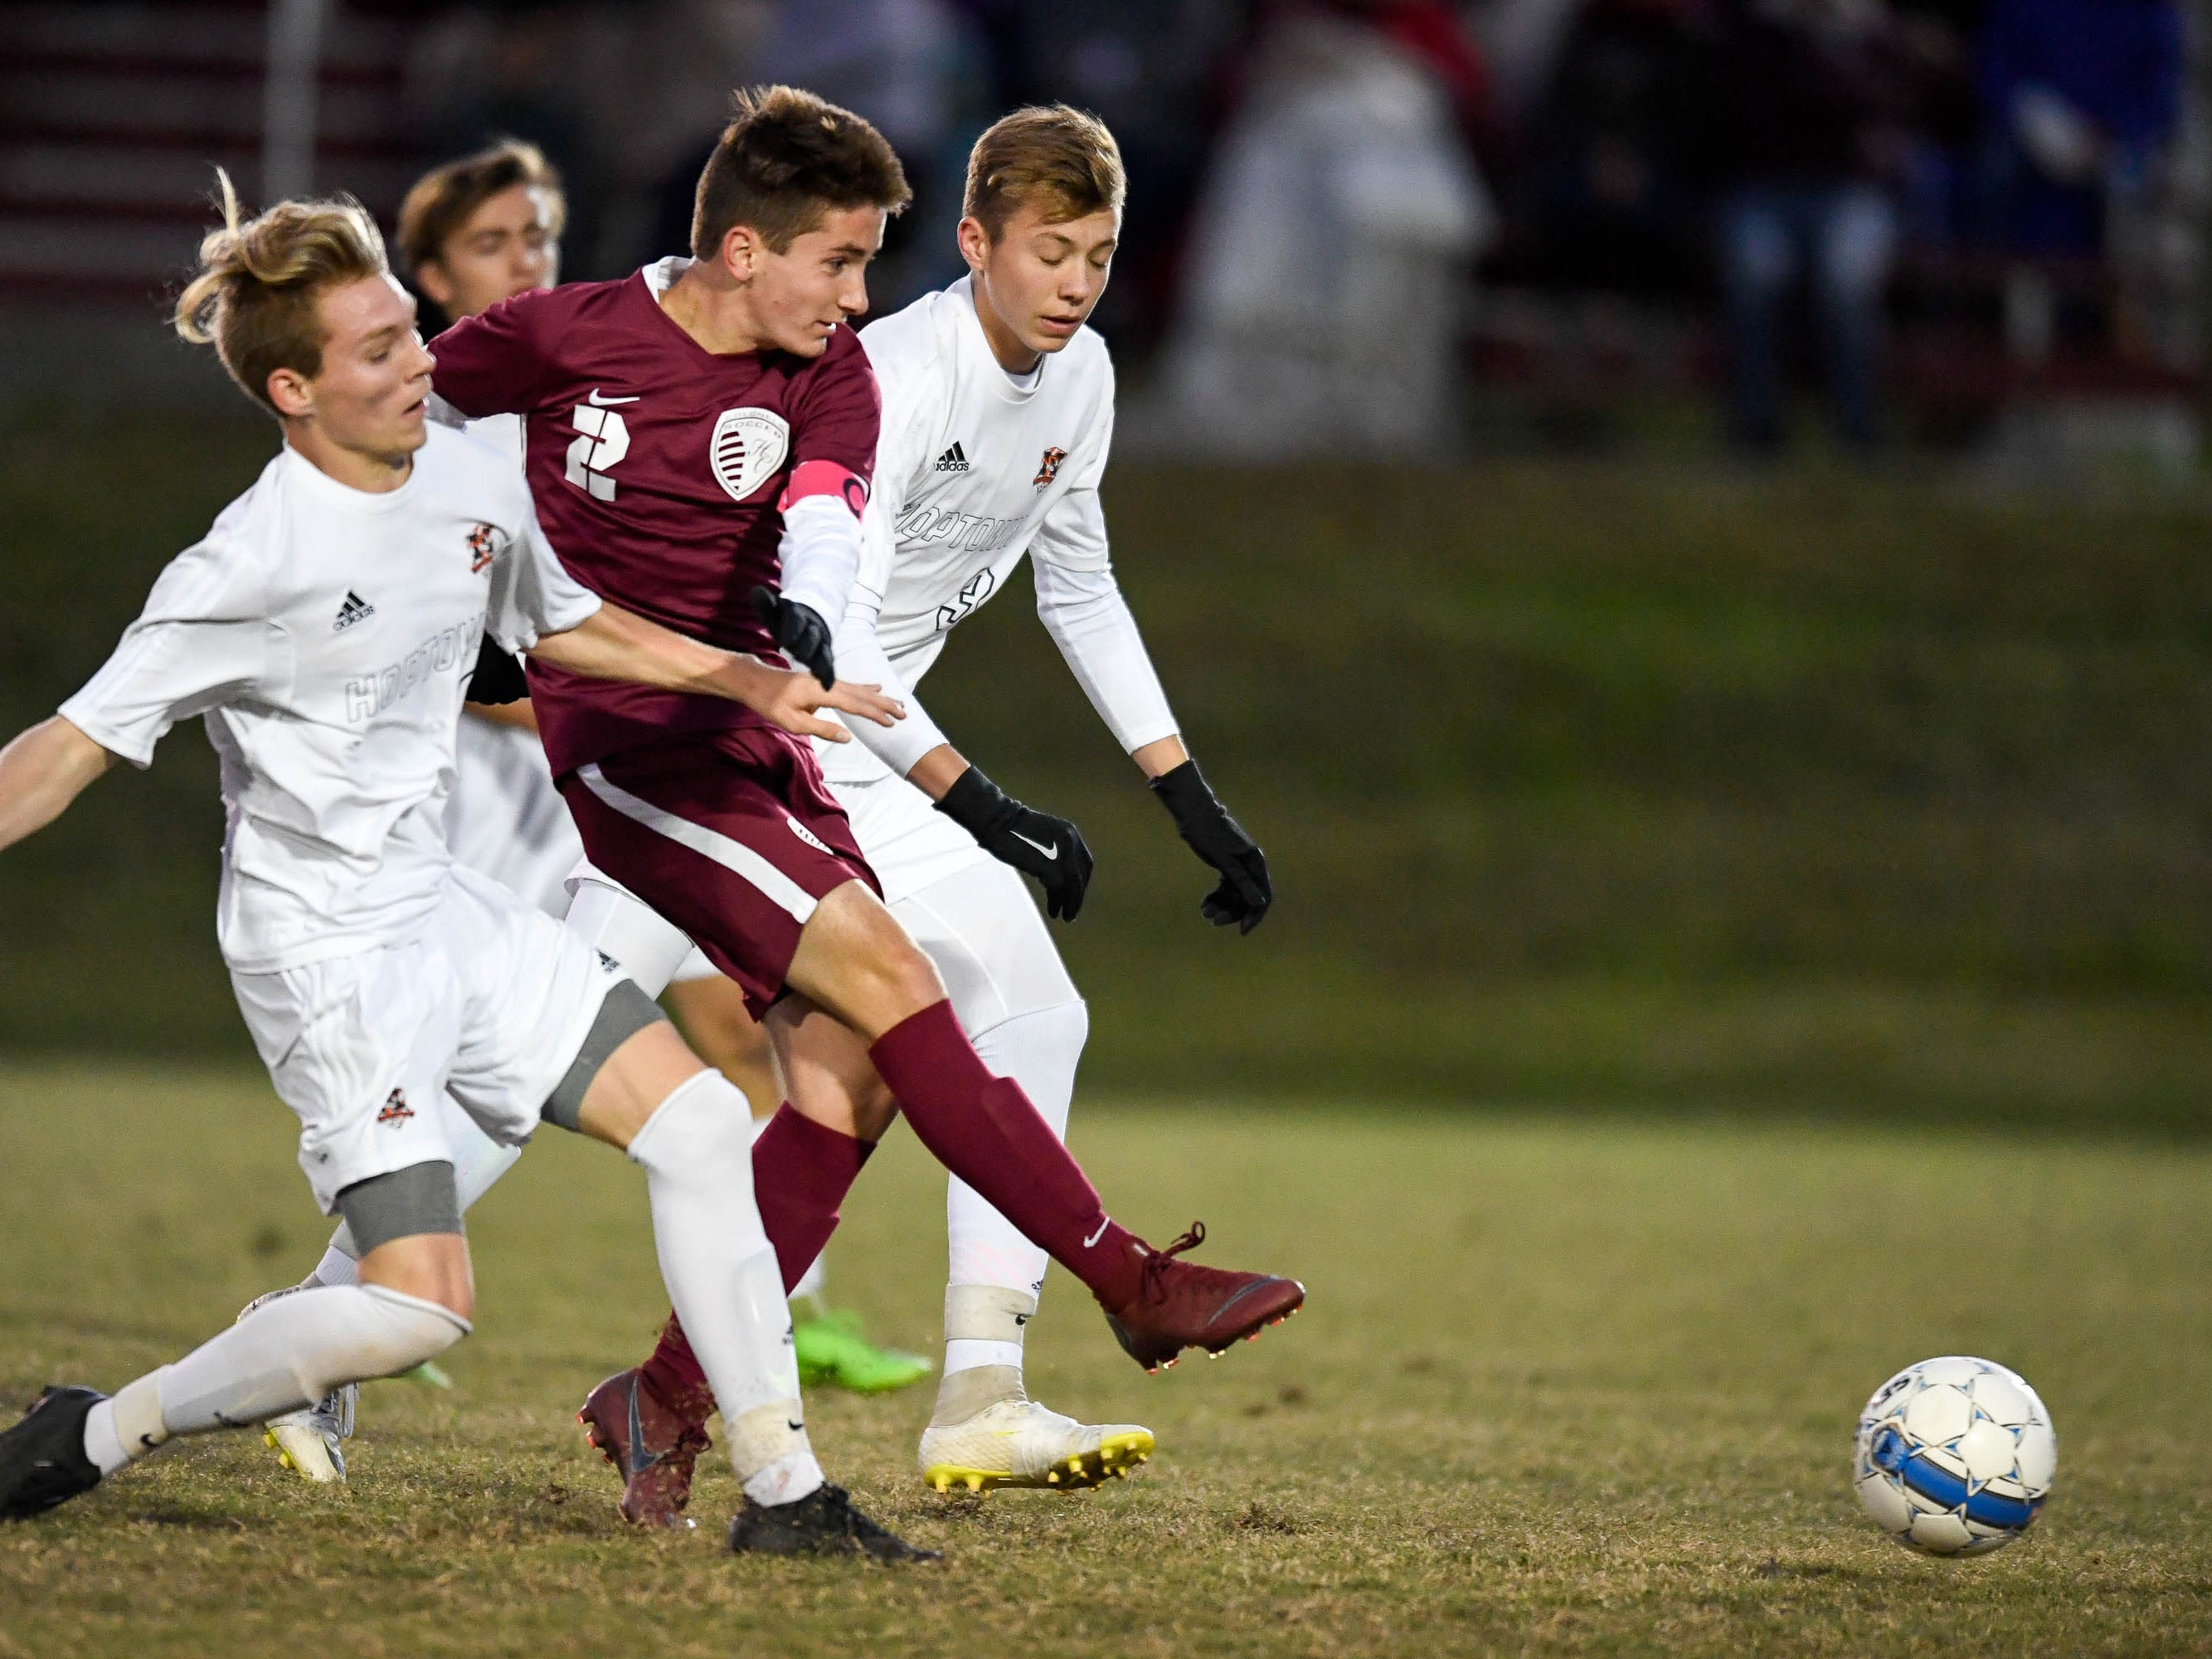 Henderson County's Samuel Cloutier (2) attacks through two Hopkinsville defenders as the Henderson County Colonels play the Hopkinsville Tigers in the regional final at Madisonville-North Hopkins High School Thursday, October 18, 2018.